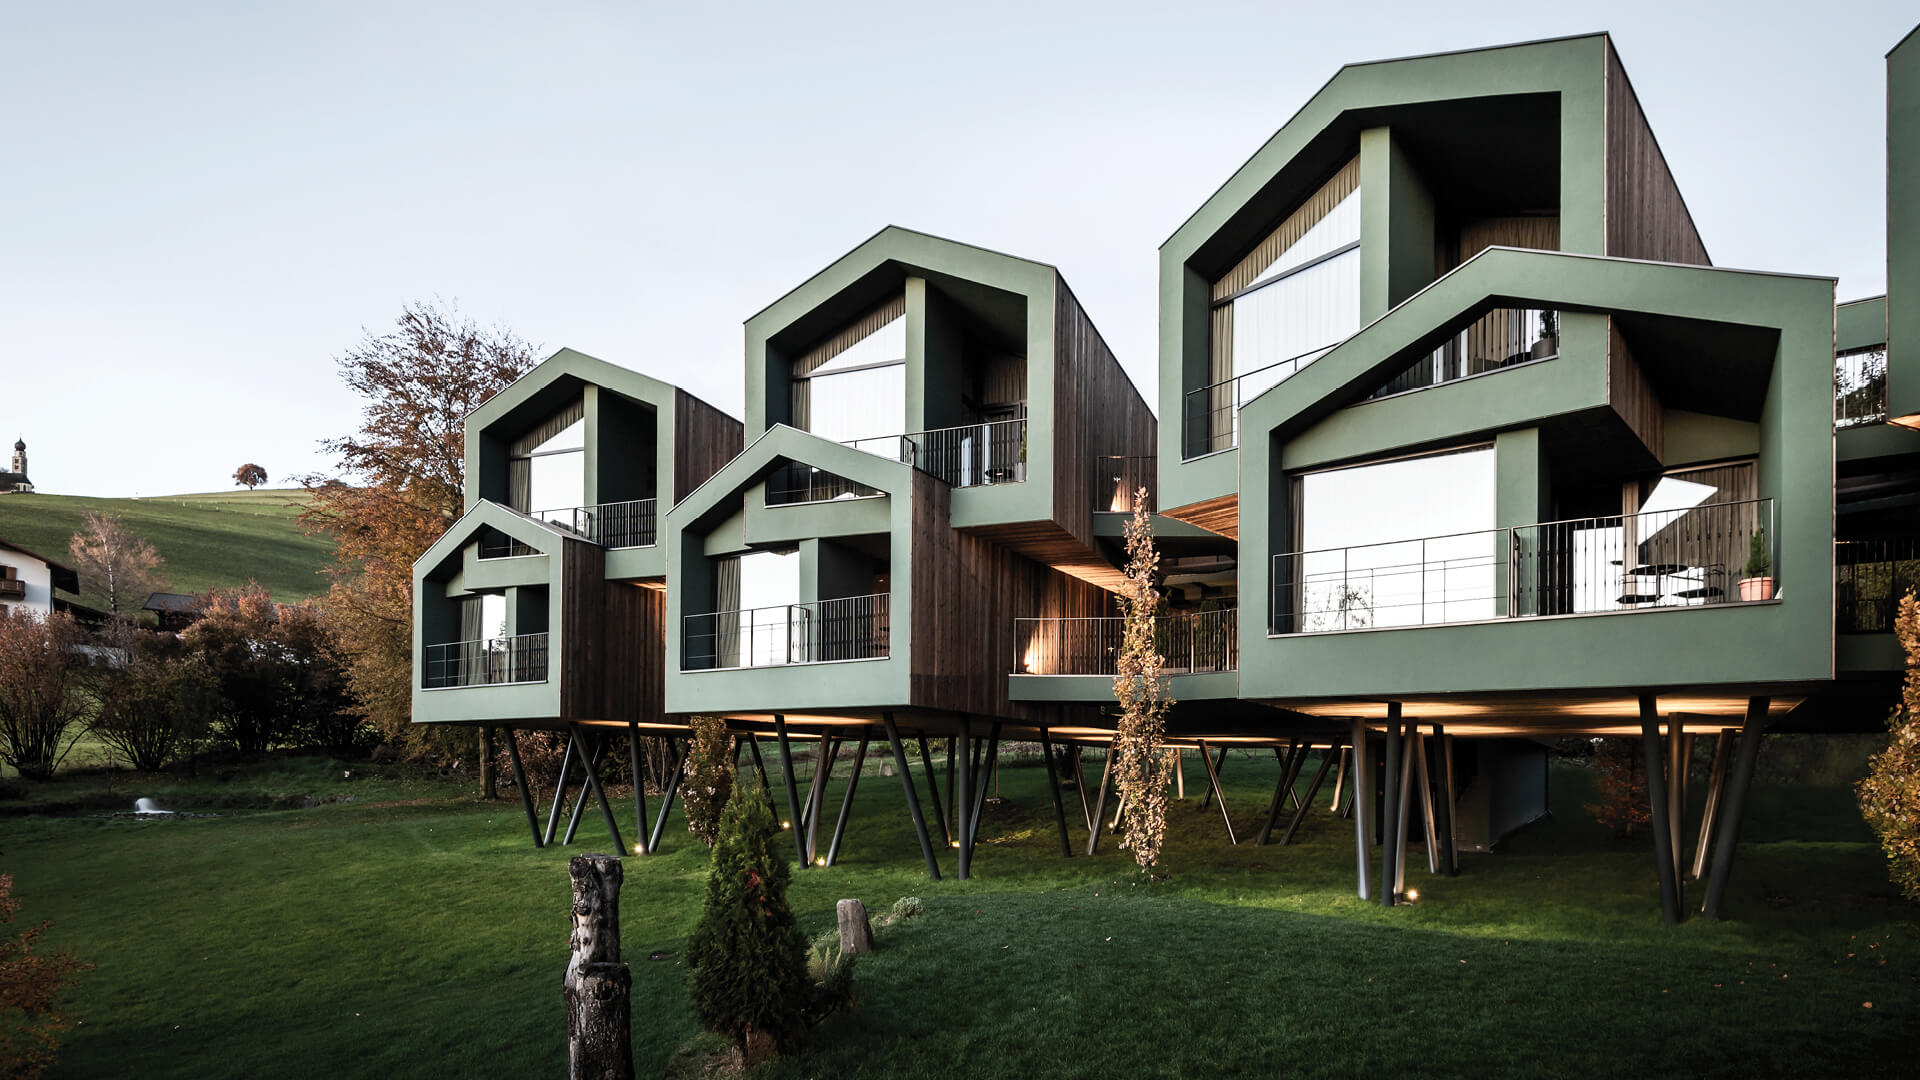 noa* designs an elevated cluster of treehouse suites for hotel Floris, Italy